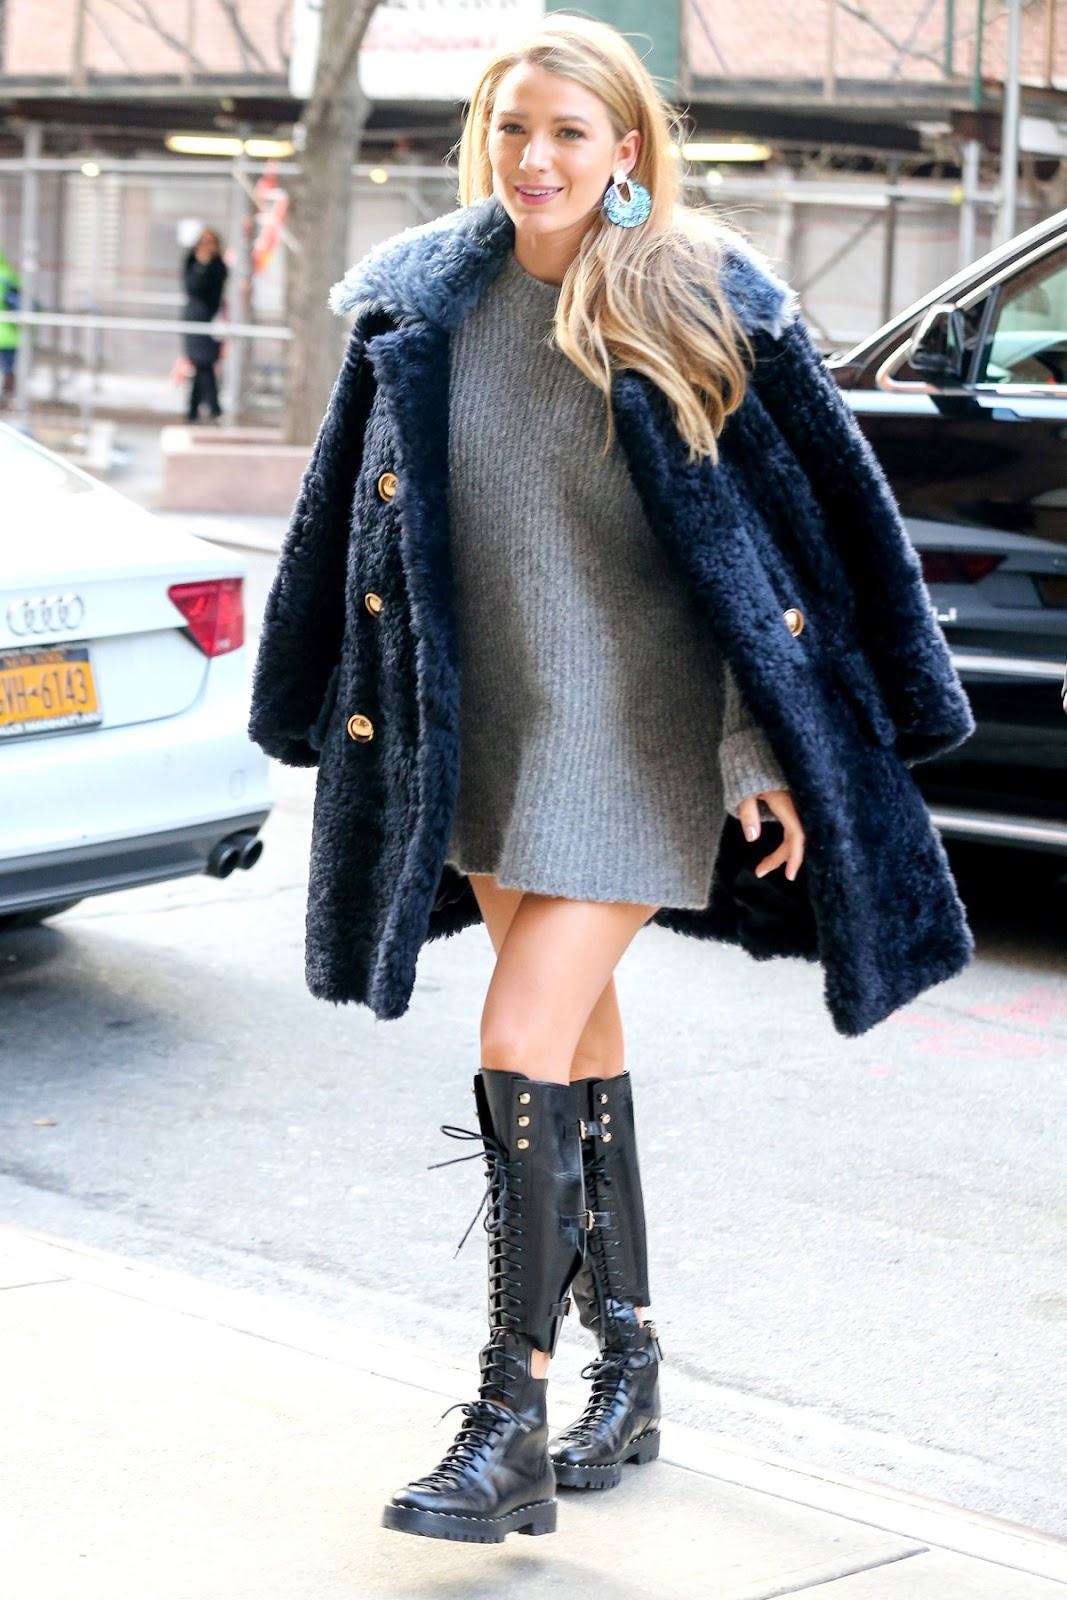 Blake Lively's Best Style Moments: Dresses, Gowns, Outfits